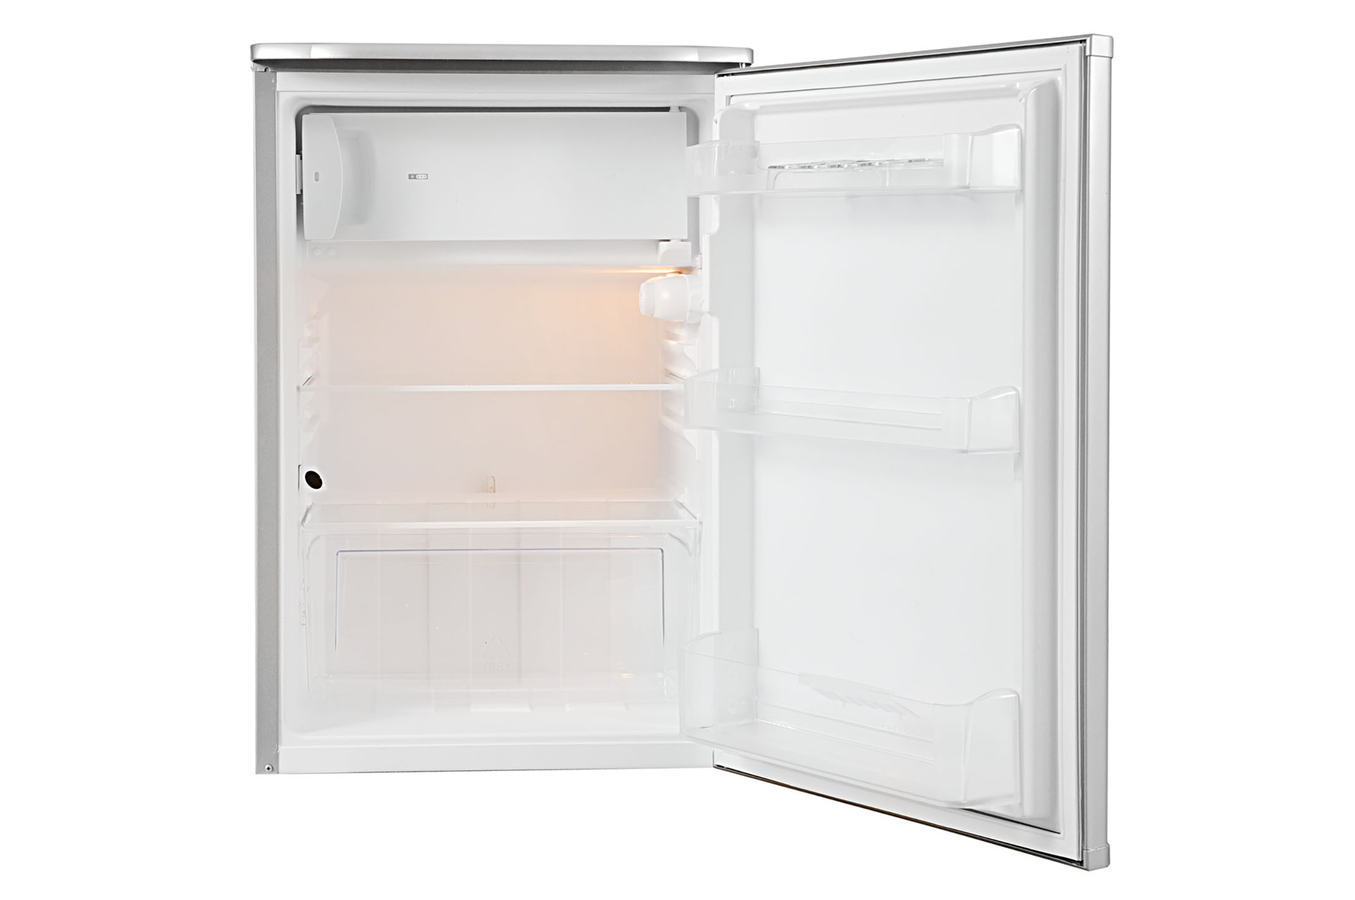 refrigerateur sous plan smeg fa130apx1 (4032845)  darty